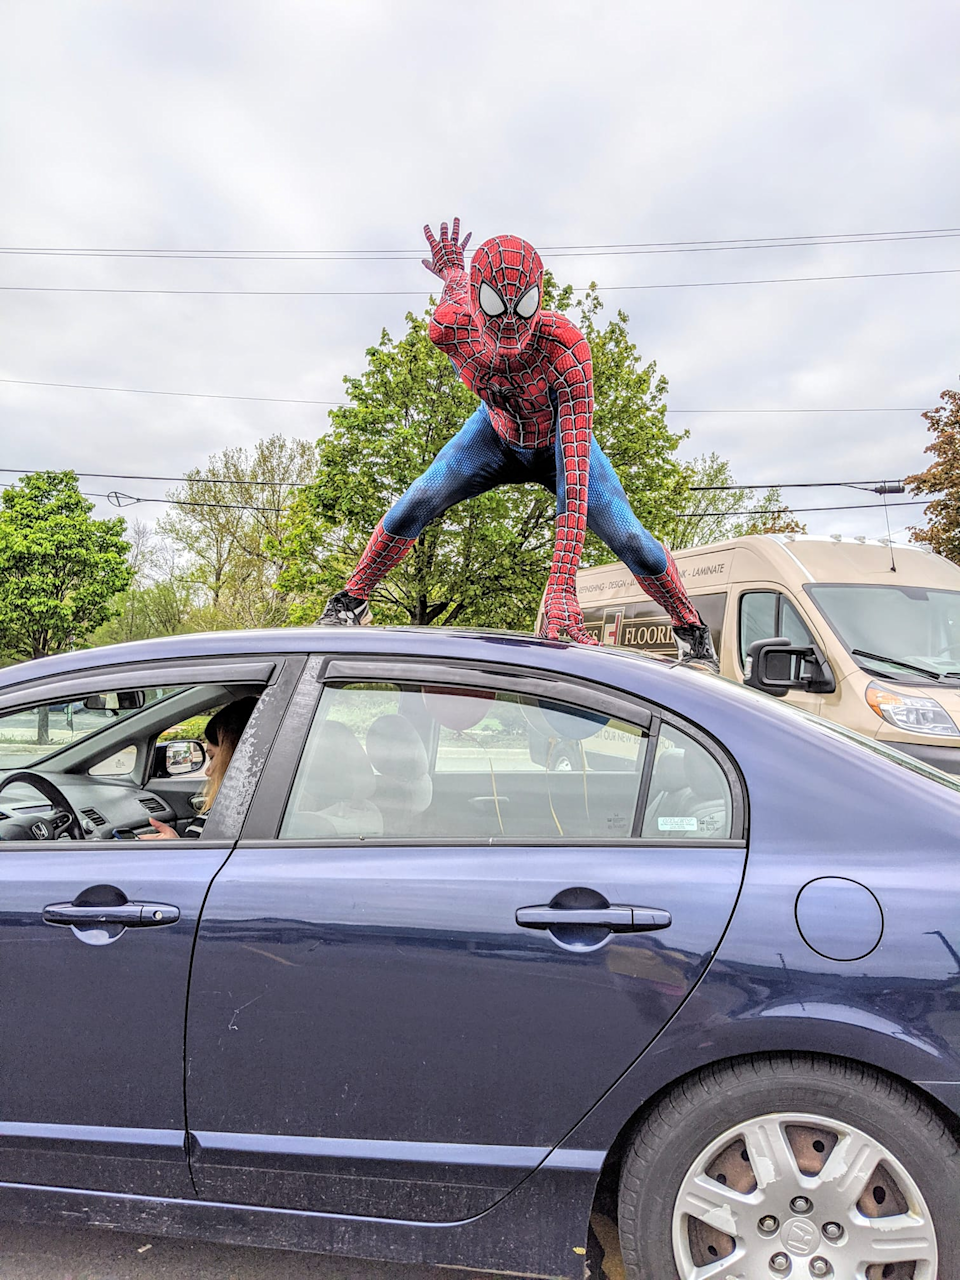 <em>Spider-Man lands on top of his Honda Civic. (Photo courtesy of Mike Justman)</em>